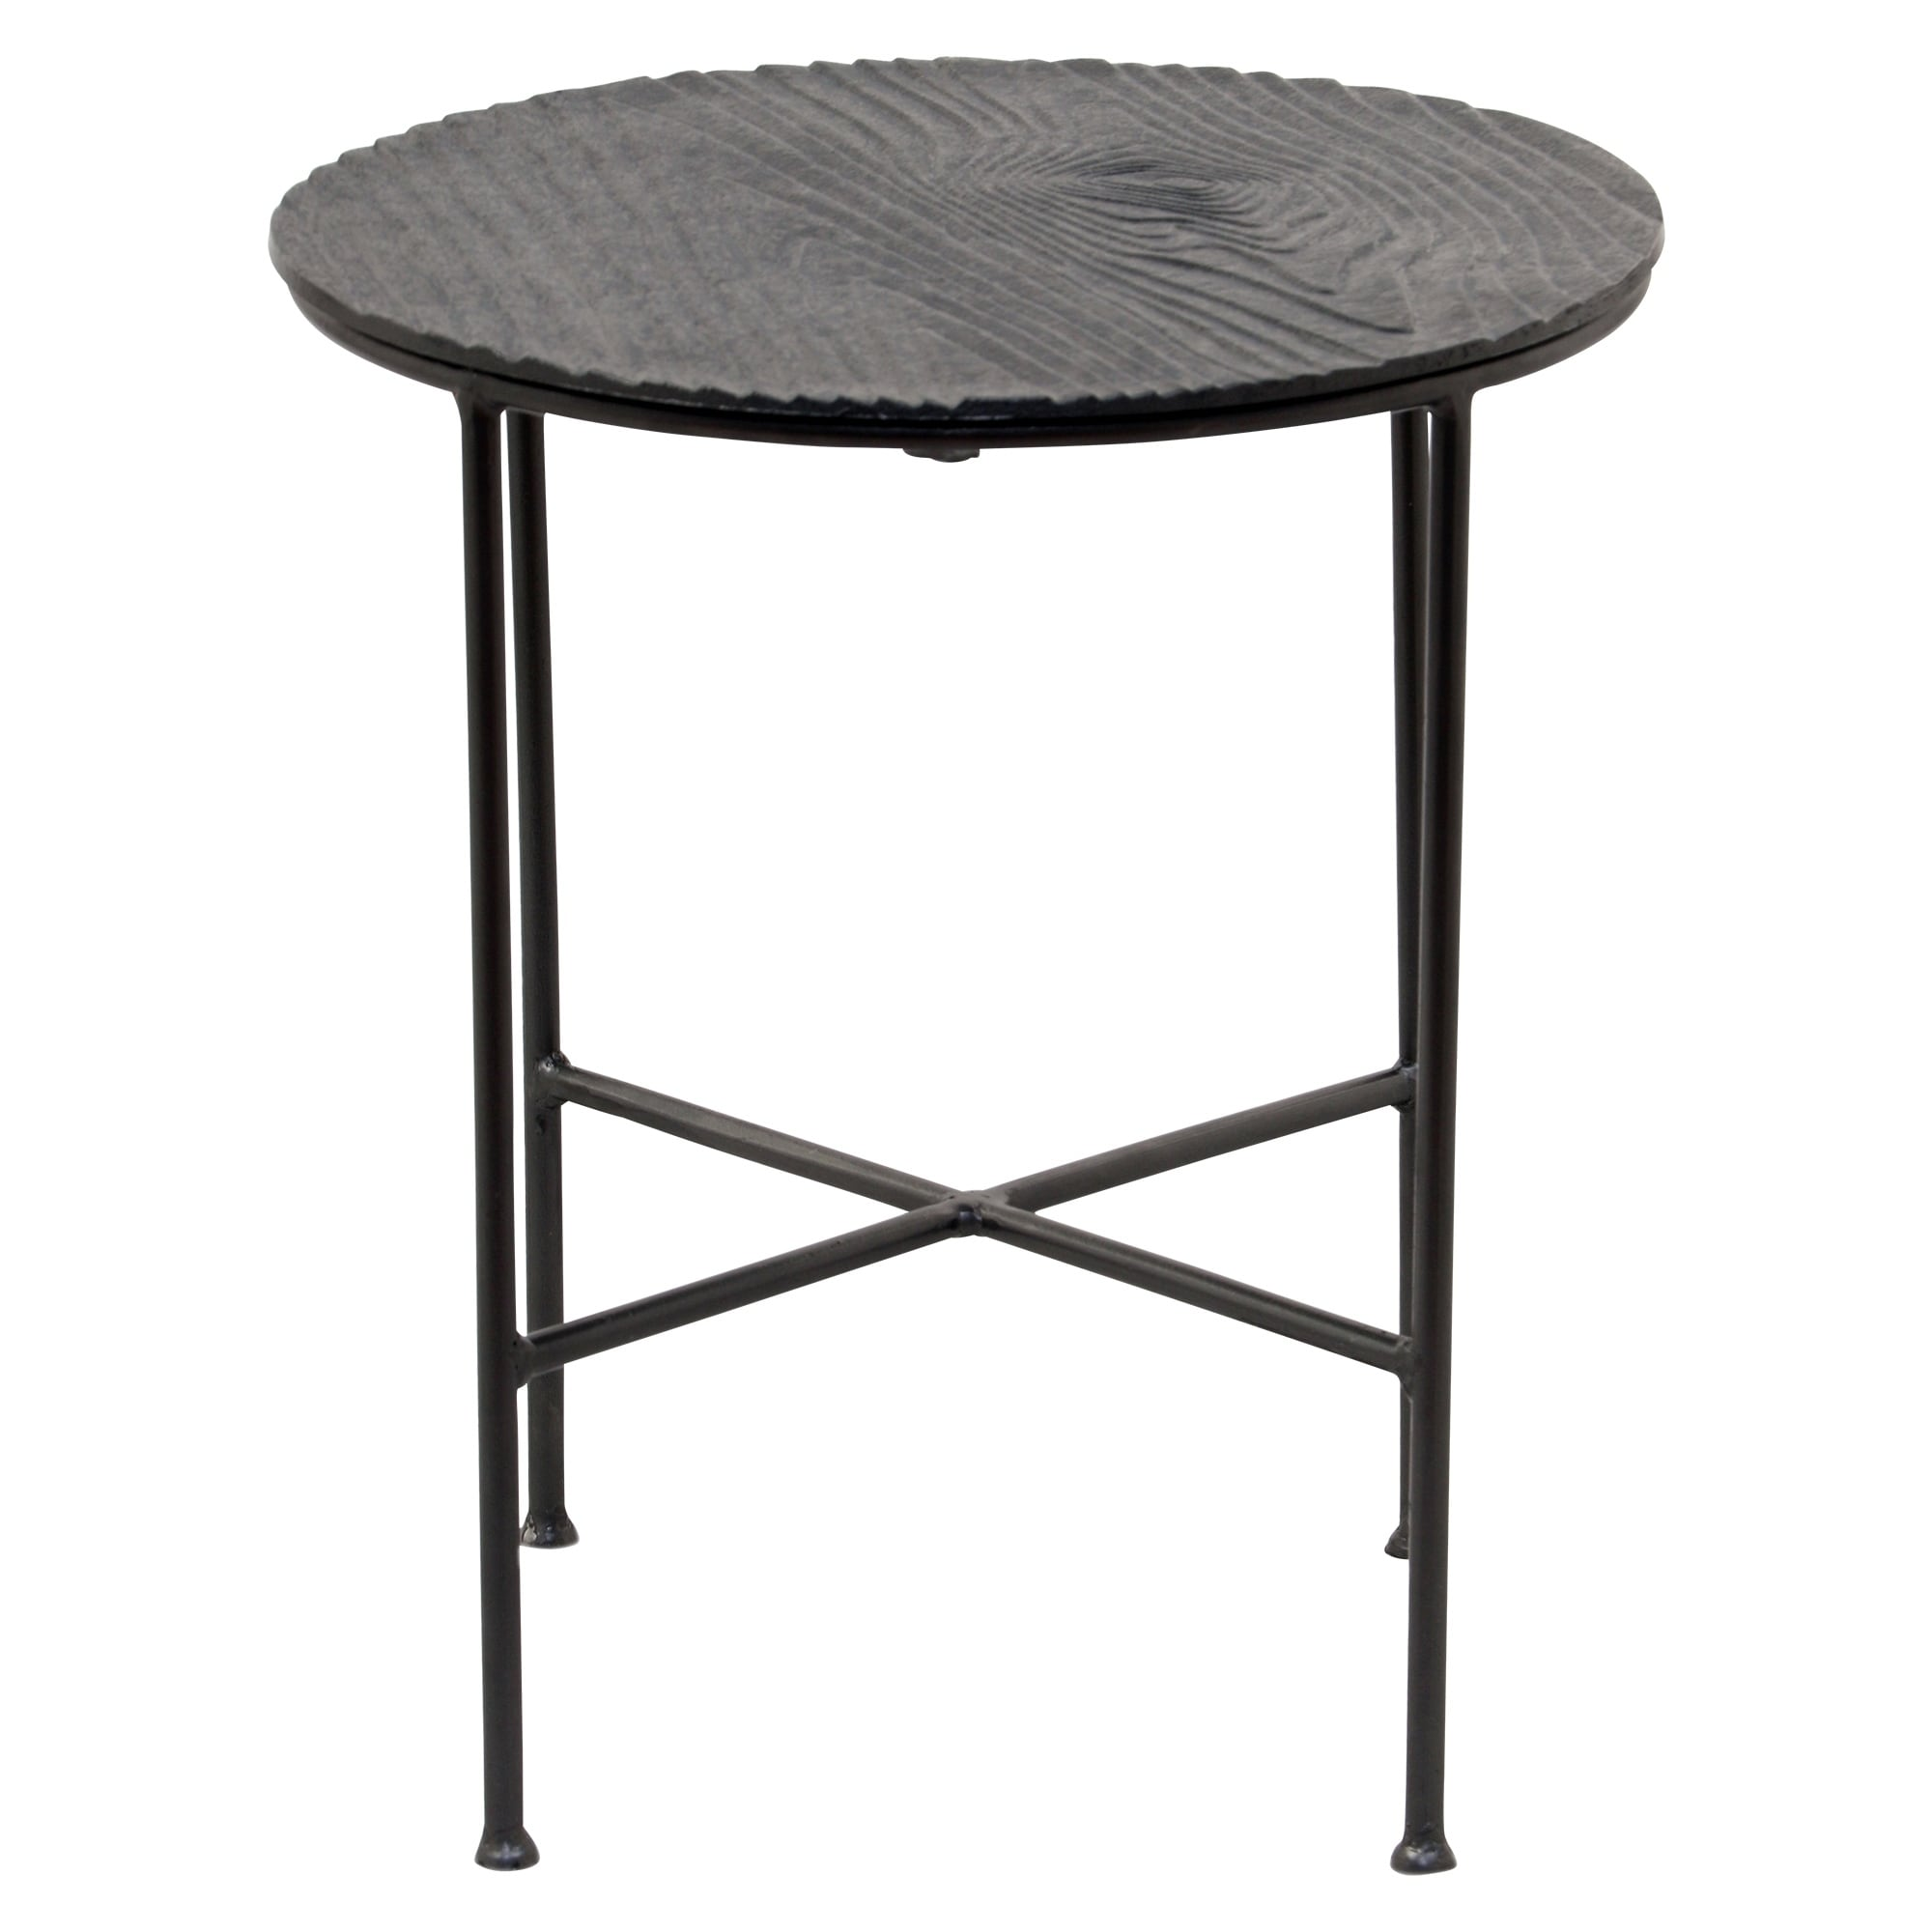 renwil bale grey aluminum round accent table free shipping safavieh janika off white today clearance wicker outdoor furniture demilune tennis wood console with drawers teak